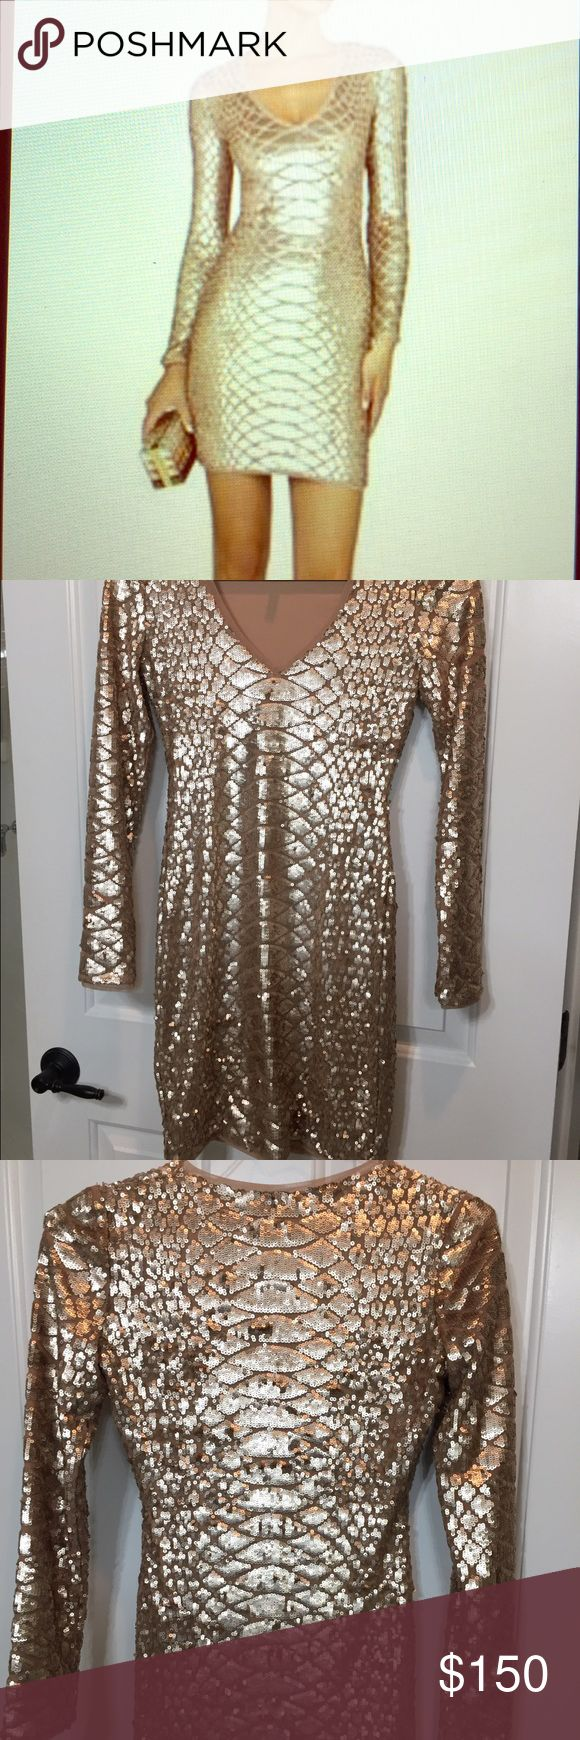 GoldMetallic Sabryna BCBG LongSleeve Bodycon Dress Gorgeous sequined bodycon dress from BCBG Maxazria. Size S but fits closer to an XS. Originally $270! Nude/Gold metallic long sleeve dress with snake print texture in sequins. Terrific condition - only worn once! BCBGMaxAzria Dresses Mini